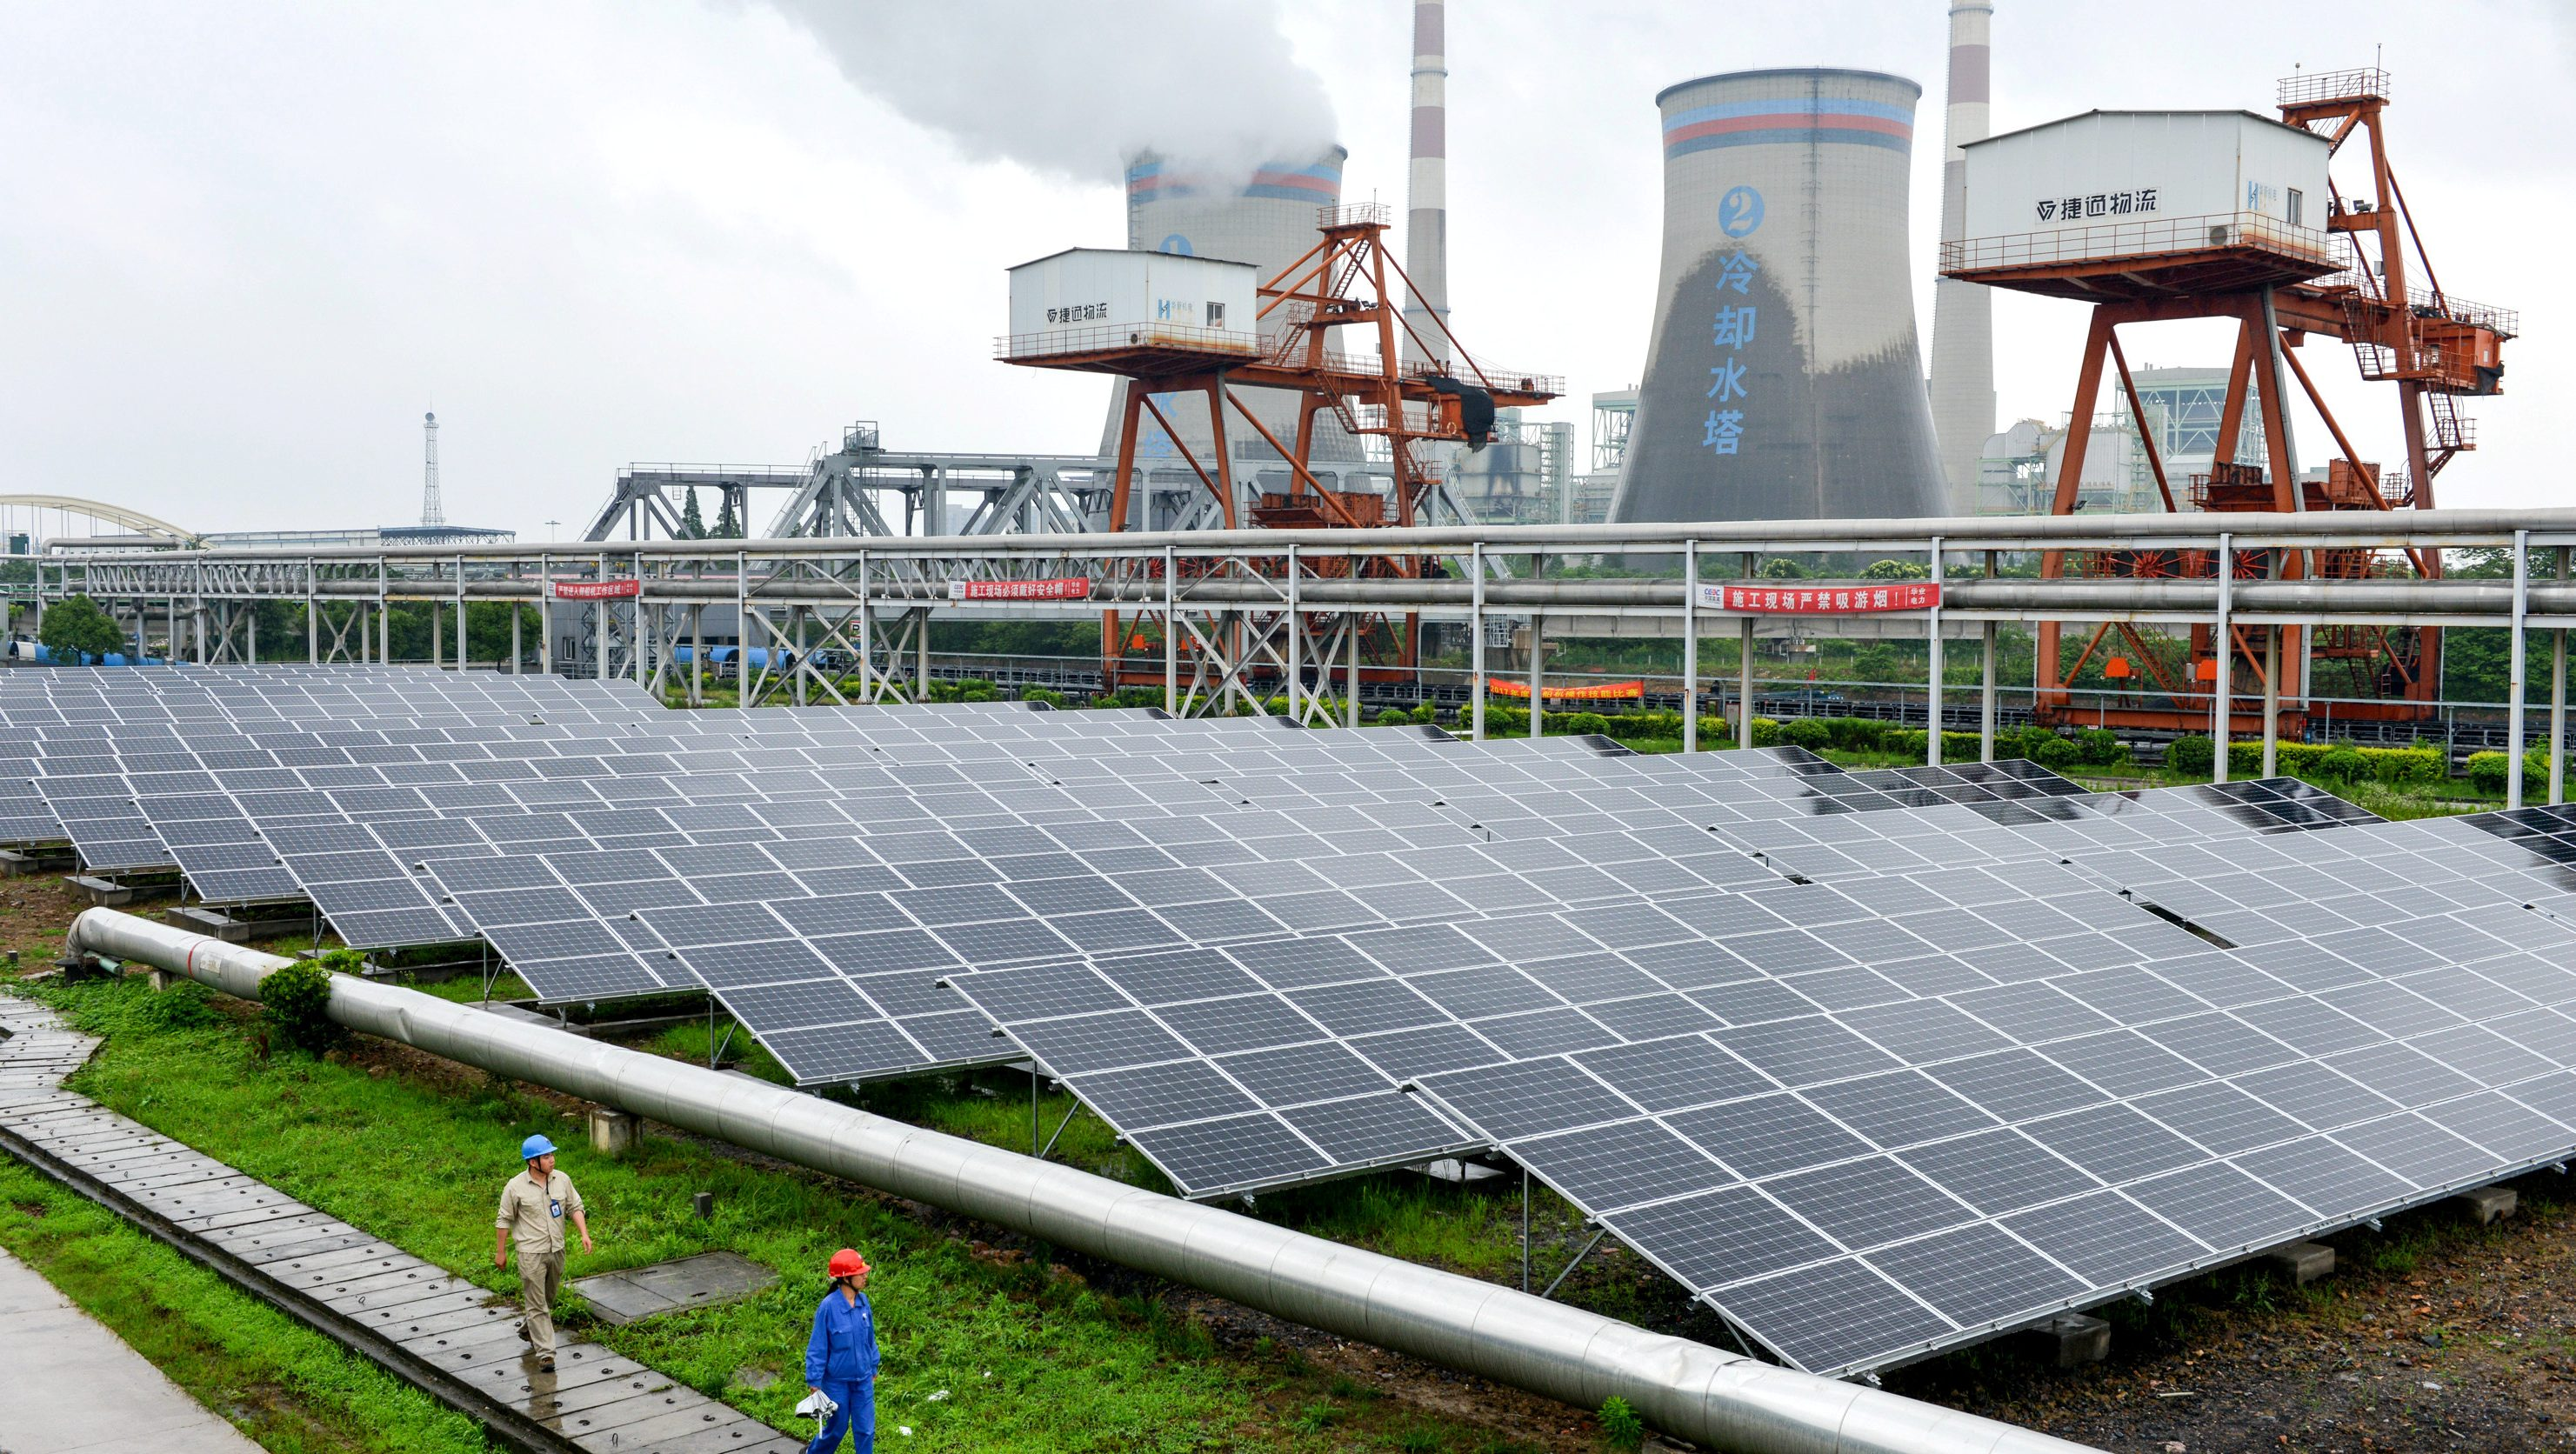 Employees check solar panels, as they work on a grid-connected photovoltaic power generation project, at a power plant in Changxing County, Zhejiang Province, China June 13, 2017.